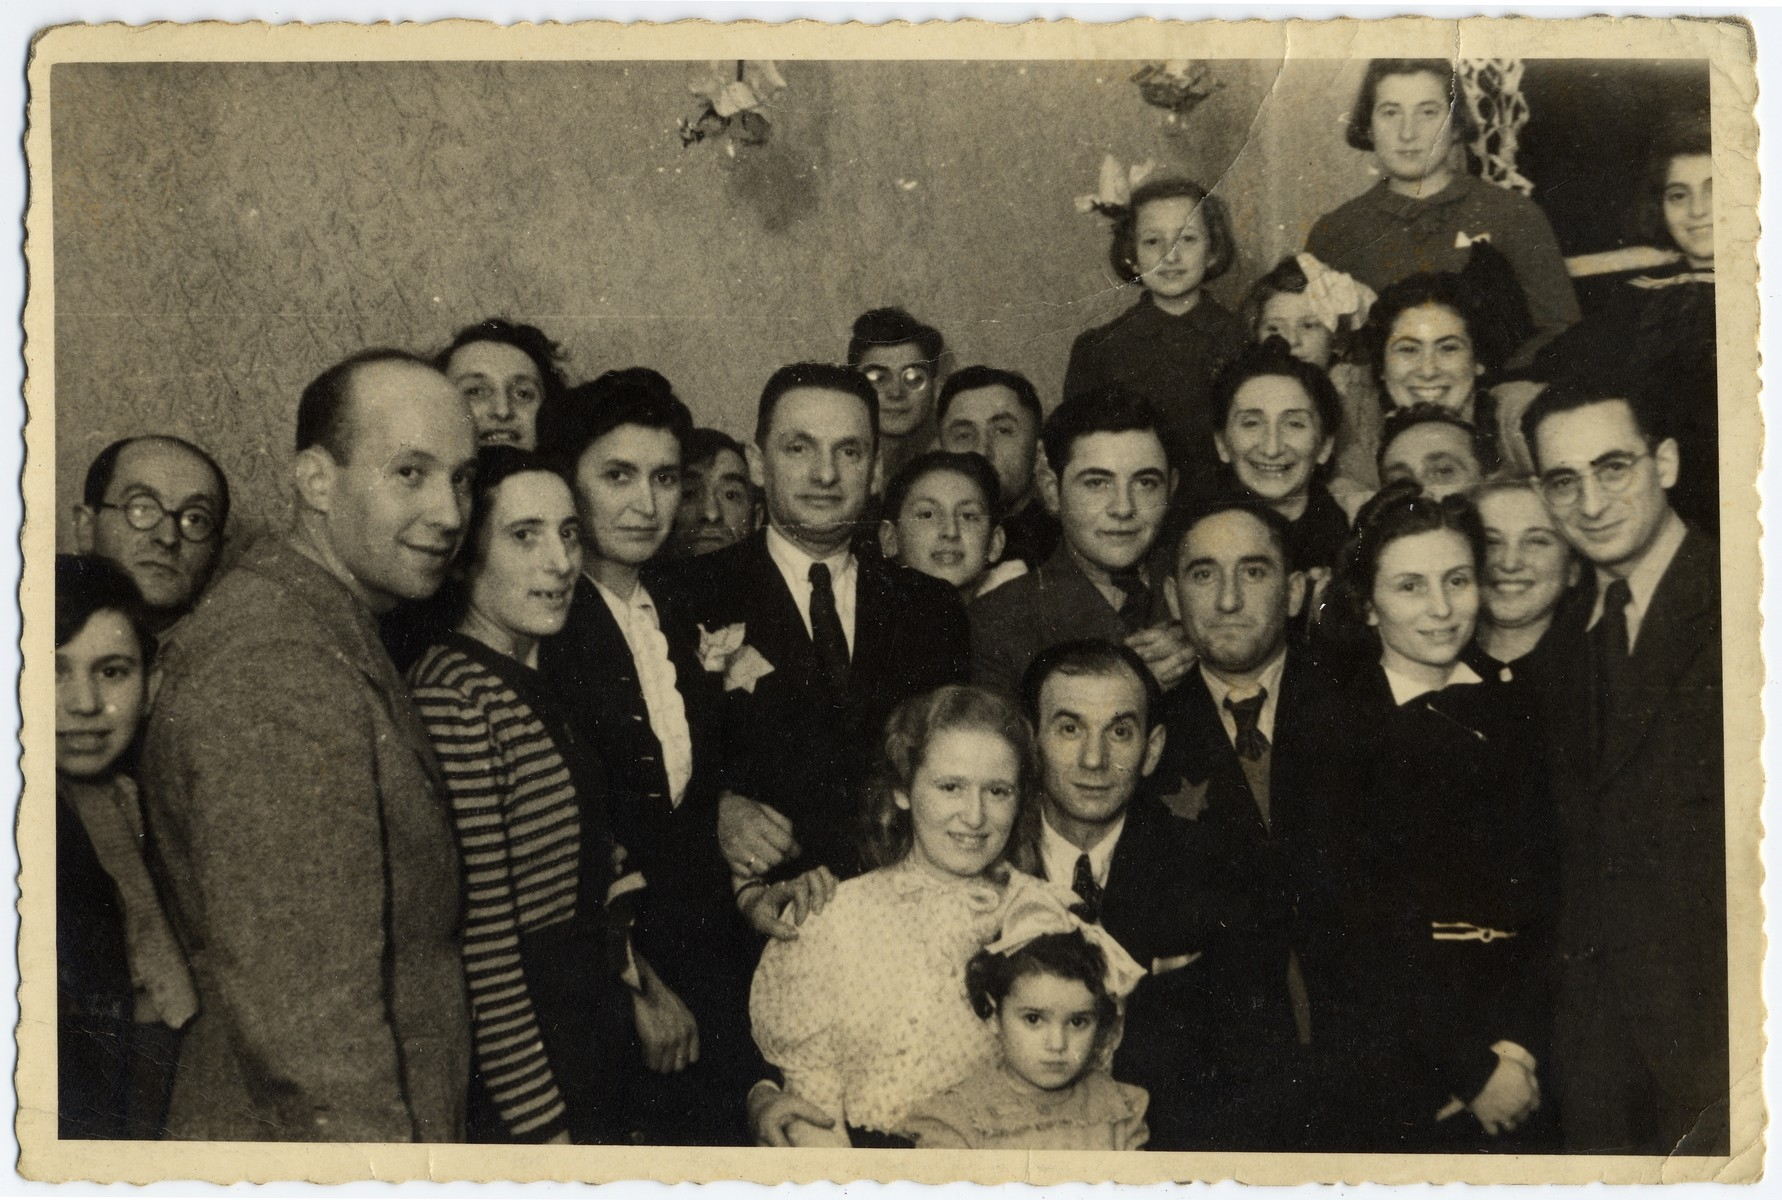 Group portrait of adults and children in the Lodz ghetto.   Among those pictured is Leon Fajtlowicz (front, right) and next to him his wife, Cesia Golab Fajtlowicz (?).  Leon was the uncle of the donor and in charge of all the leather workshops in the ghetto.